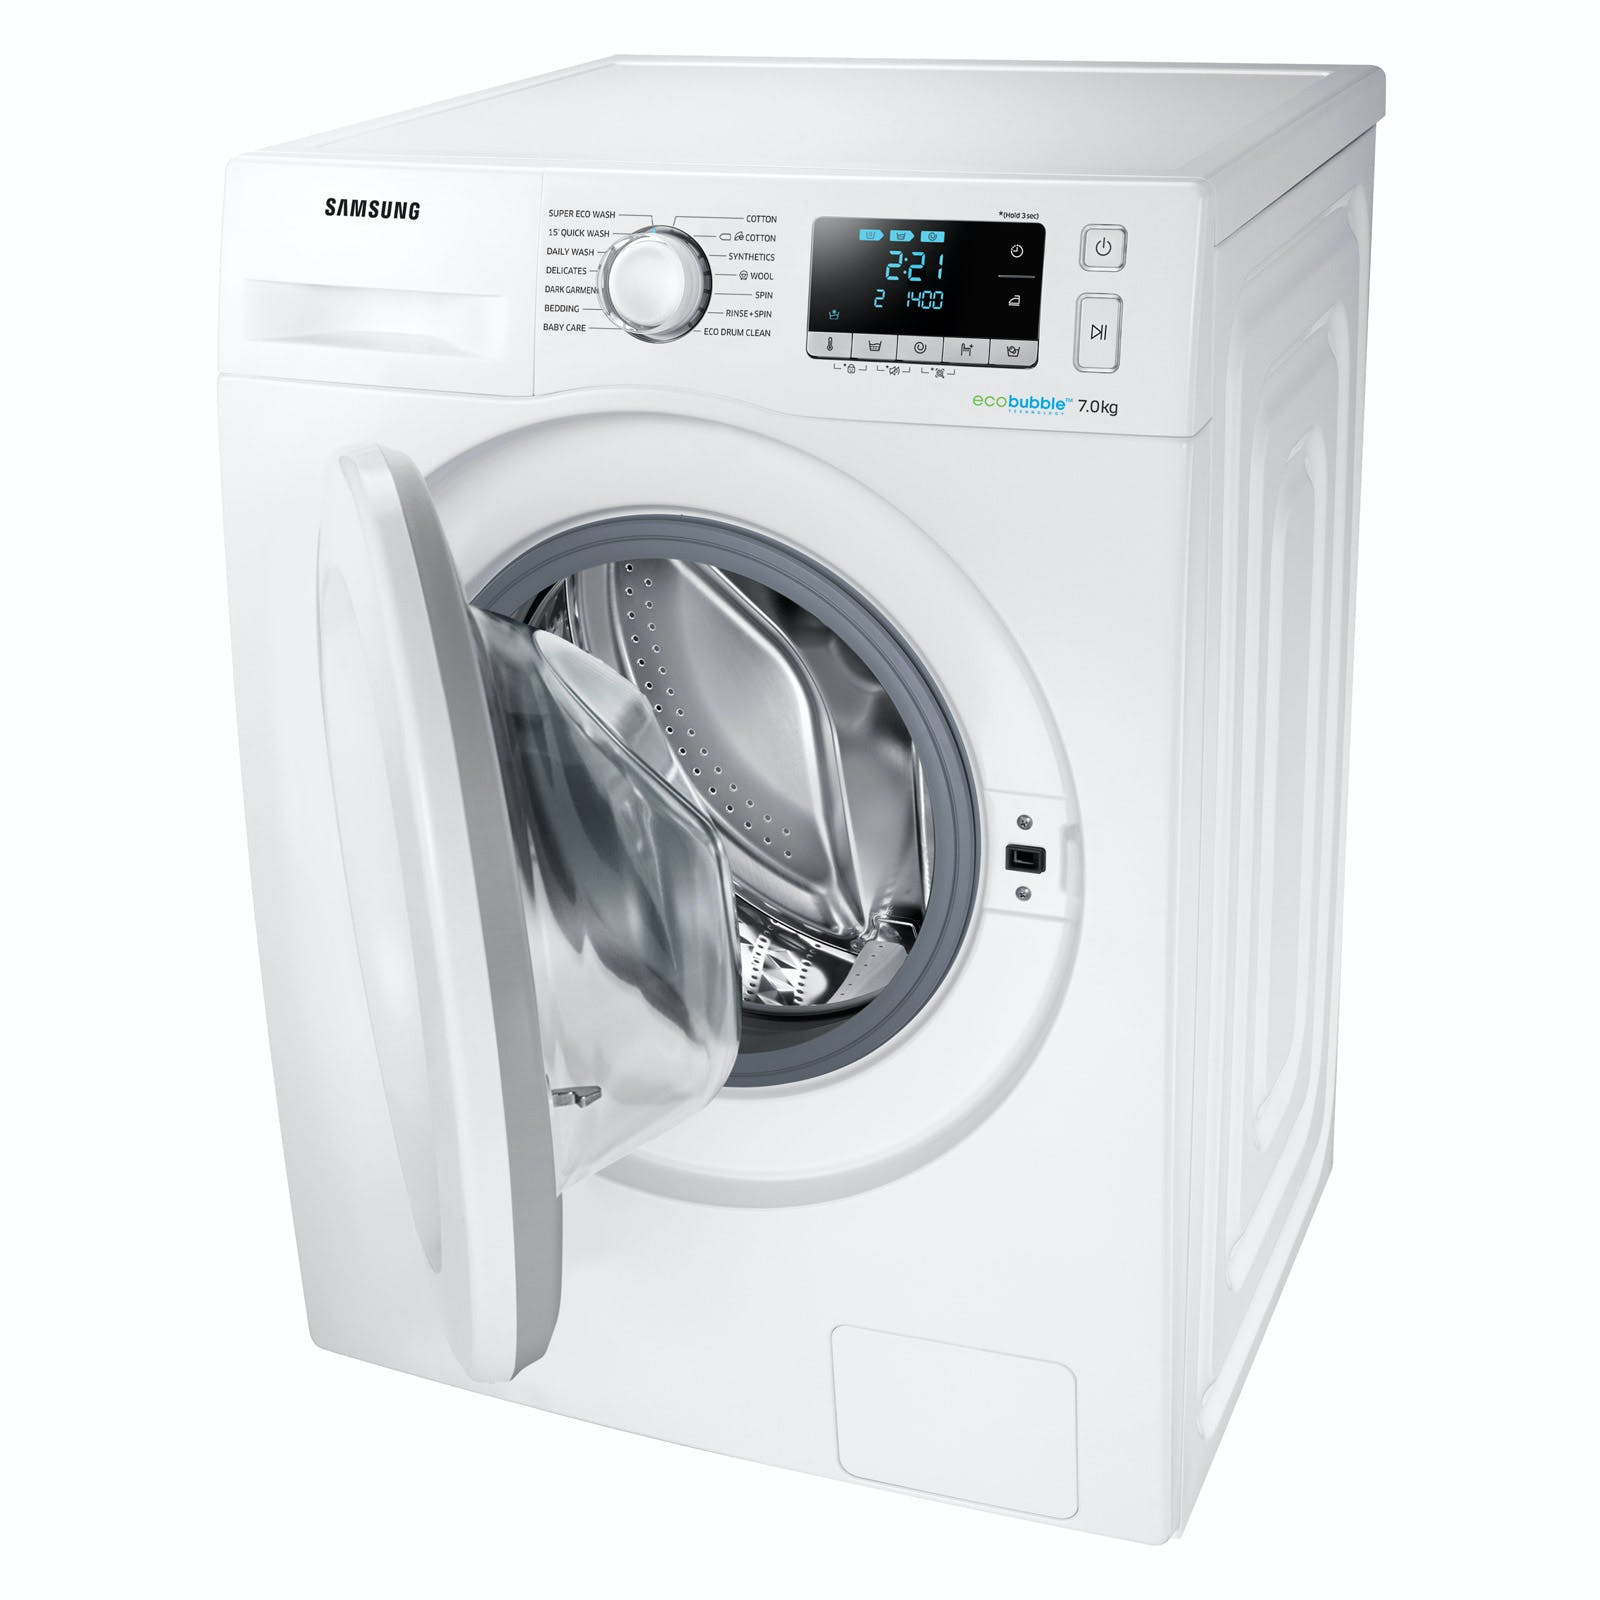 samsung ww70j5556mw eco bubble washing machine in white. Black Bedroom Furniture Sets. Home Design Ideas